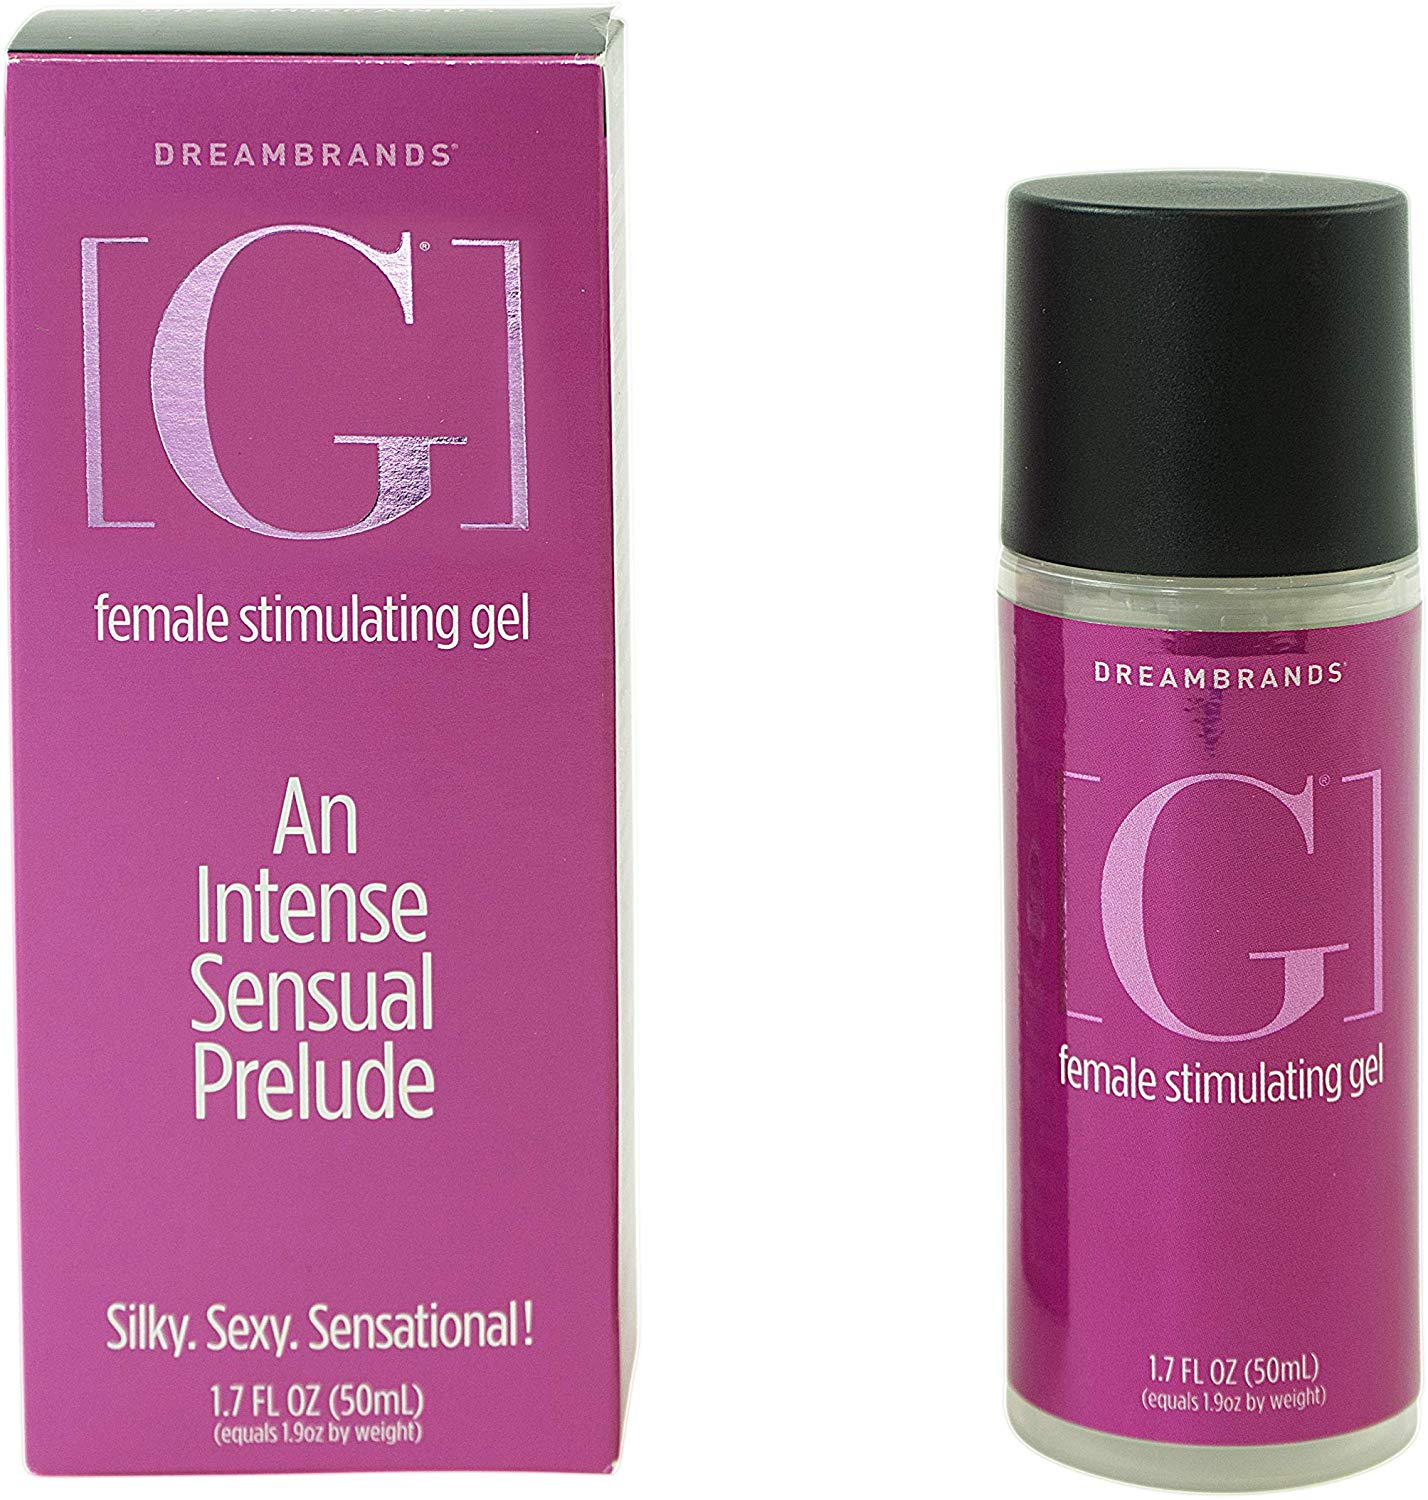 [G] Female Stimulating Gel wit…